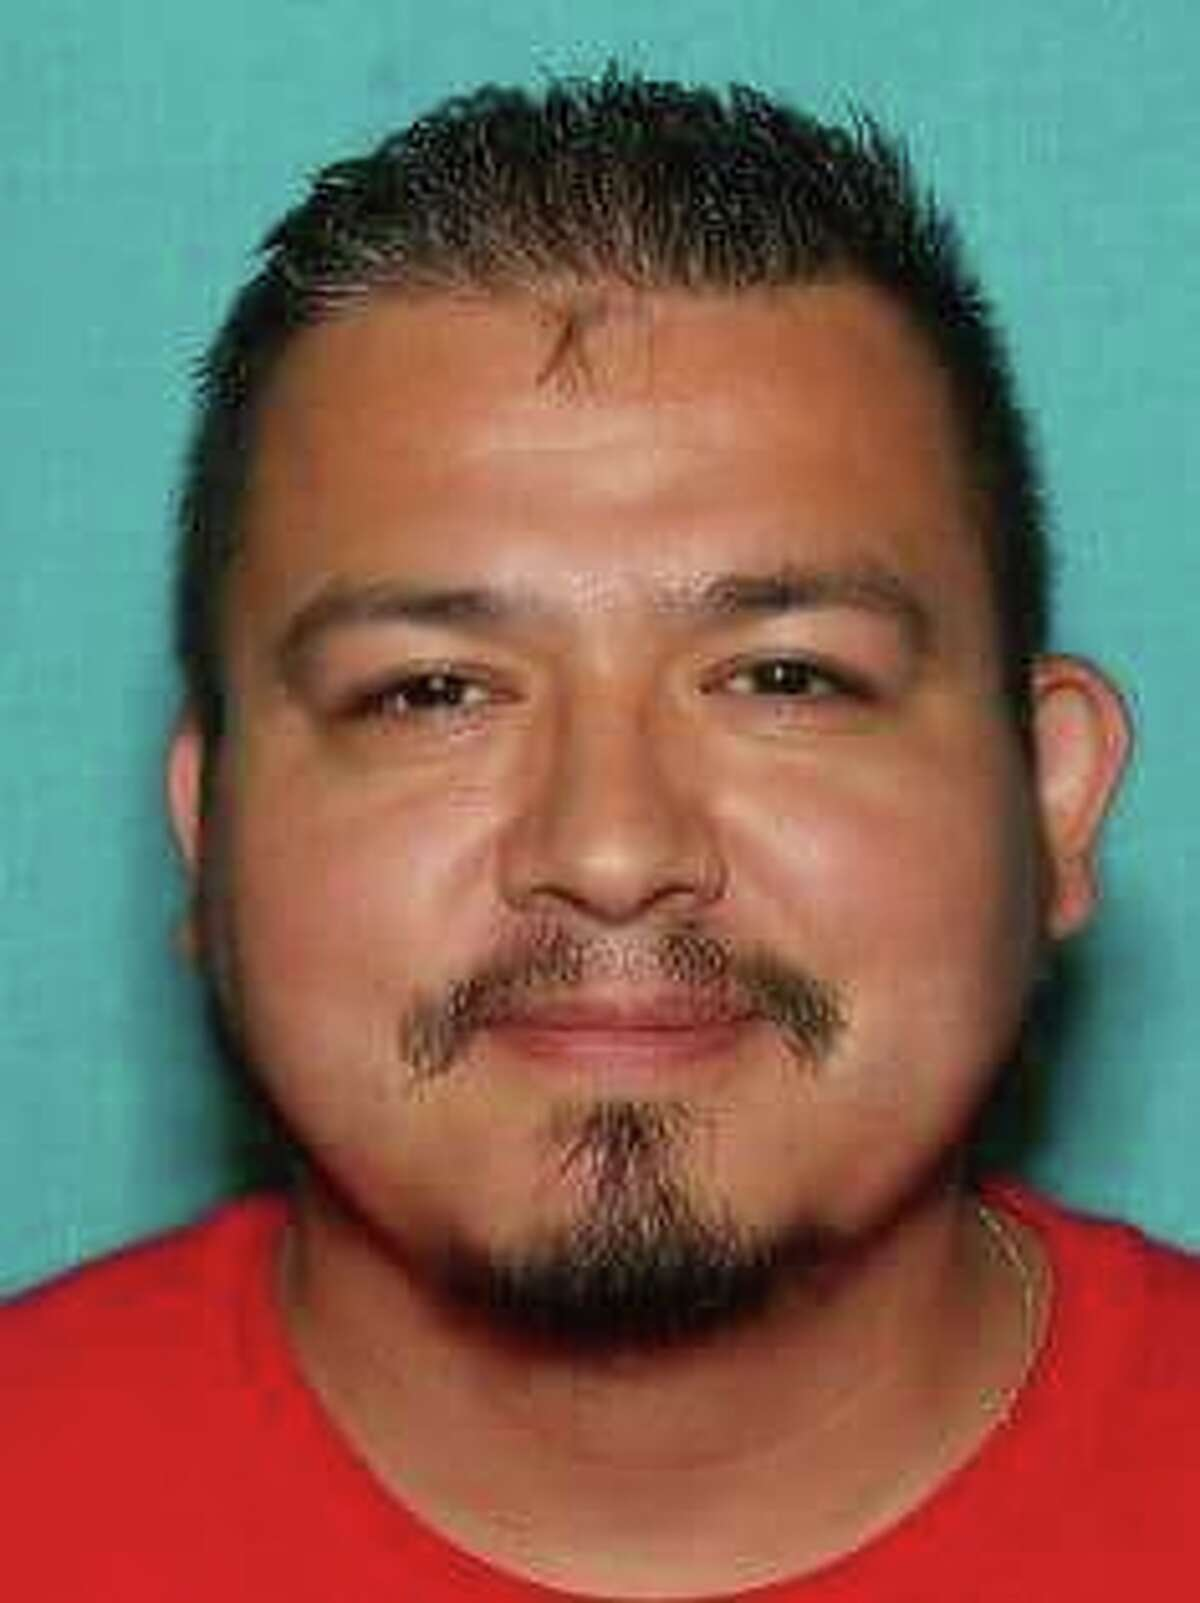 Jesus Duran has a warrant out for his arrest for the murder of Nicholas Carrillo, police said.